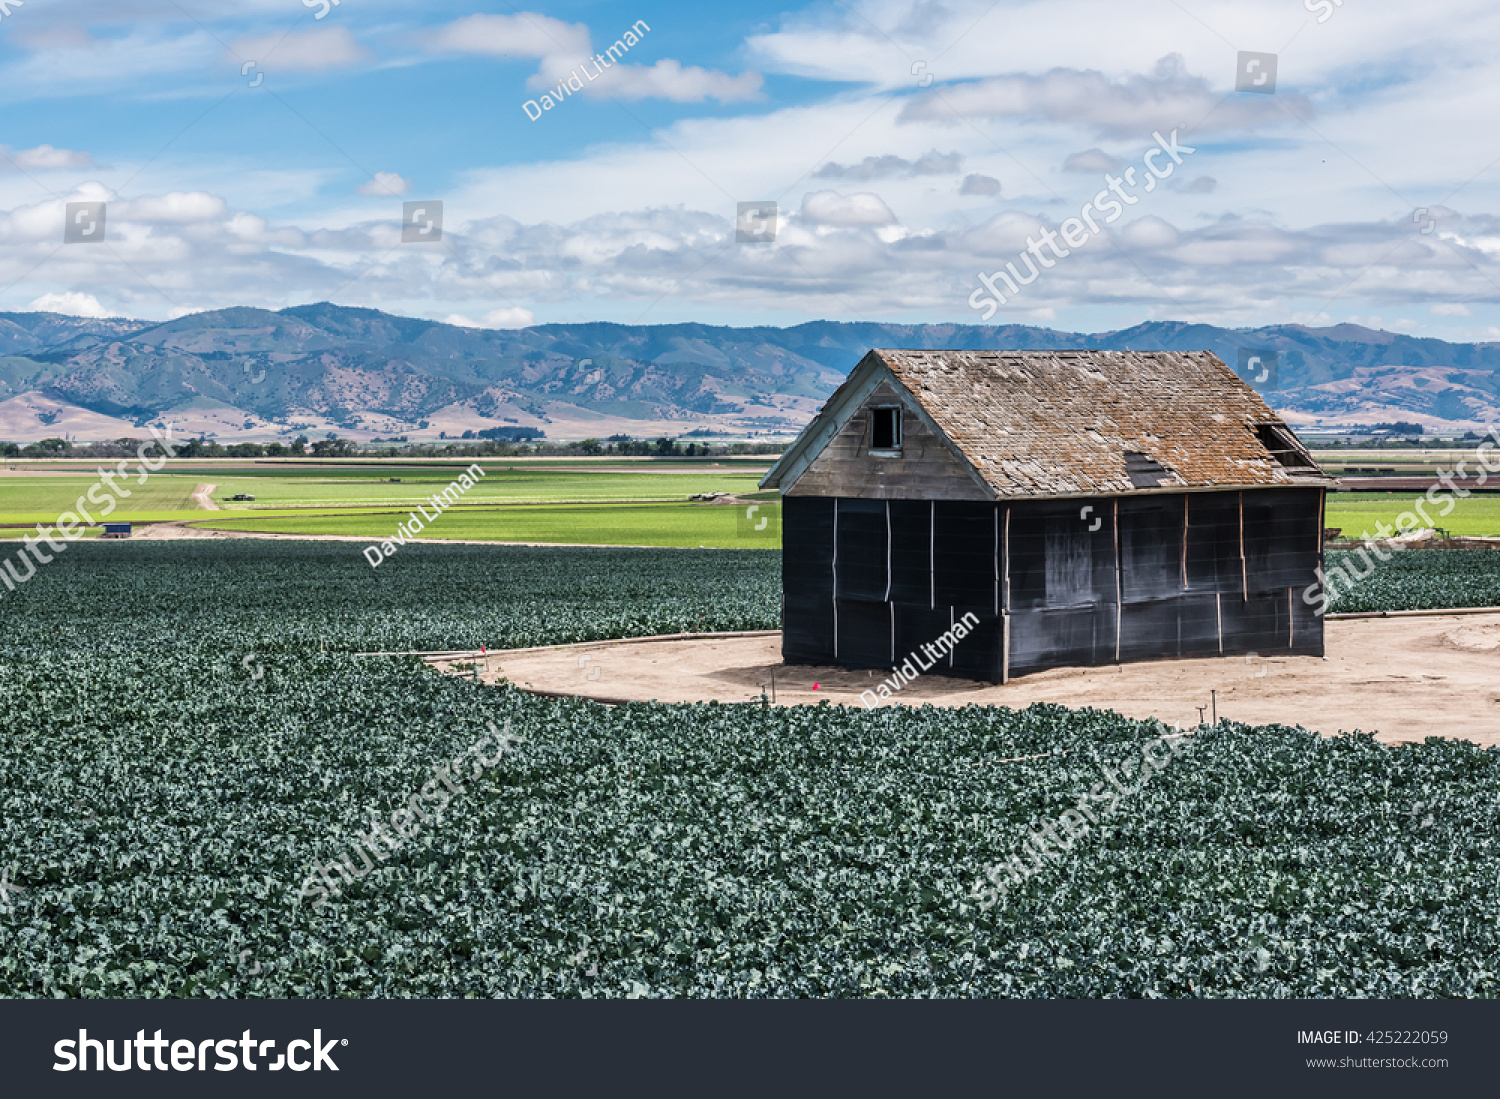 Old barn on farm land. with agricultural crops, background mountains and white clouds in the sky in Salinas Valley of Central California.